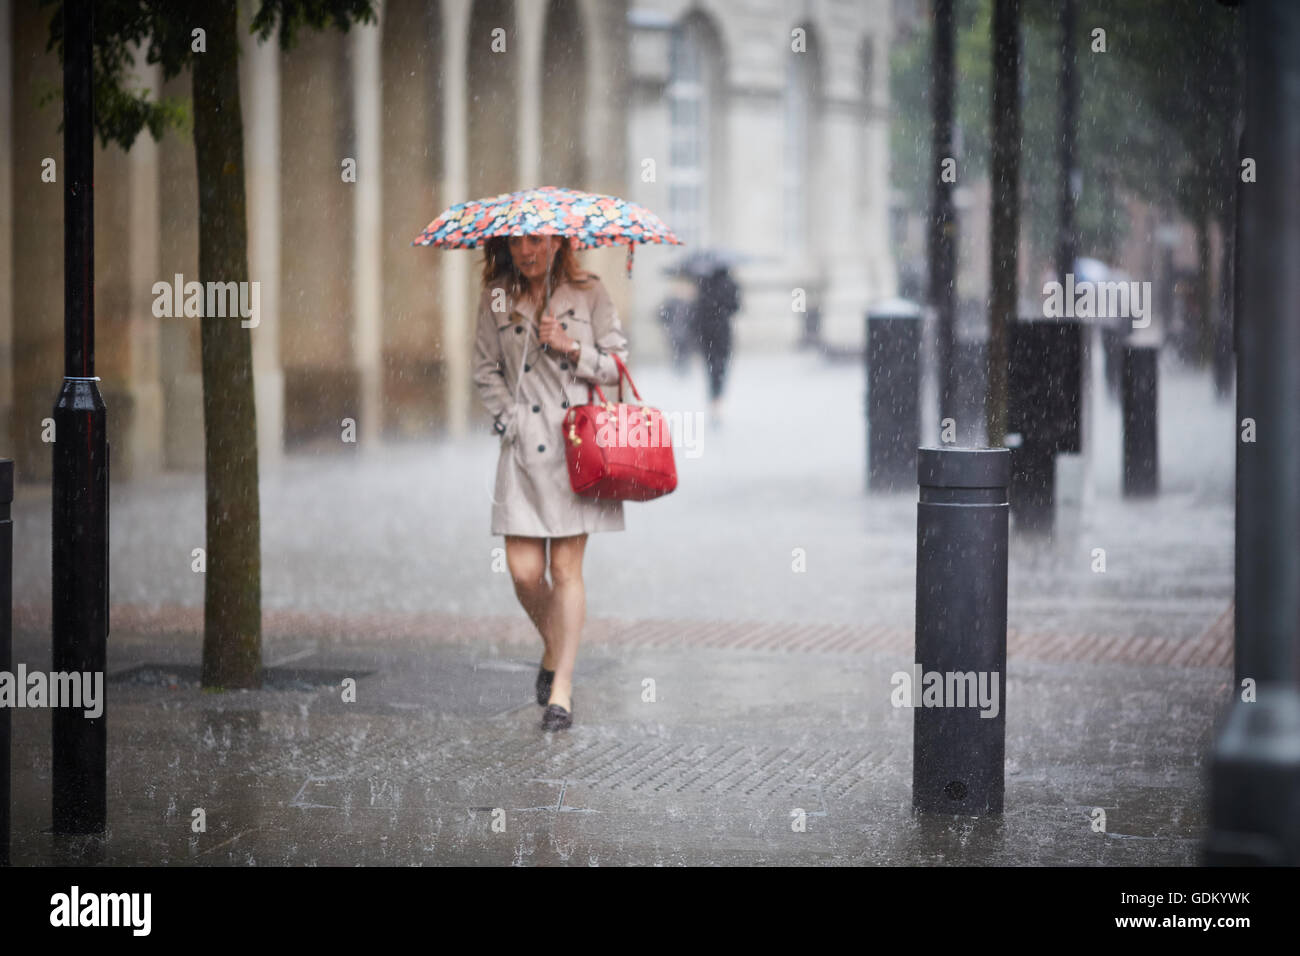 Heavy rain in Manchester city centre    Rain raining down pour  wet soaked soaking through  umbrella bouncing of - Stock Image